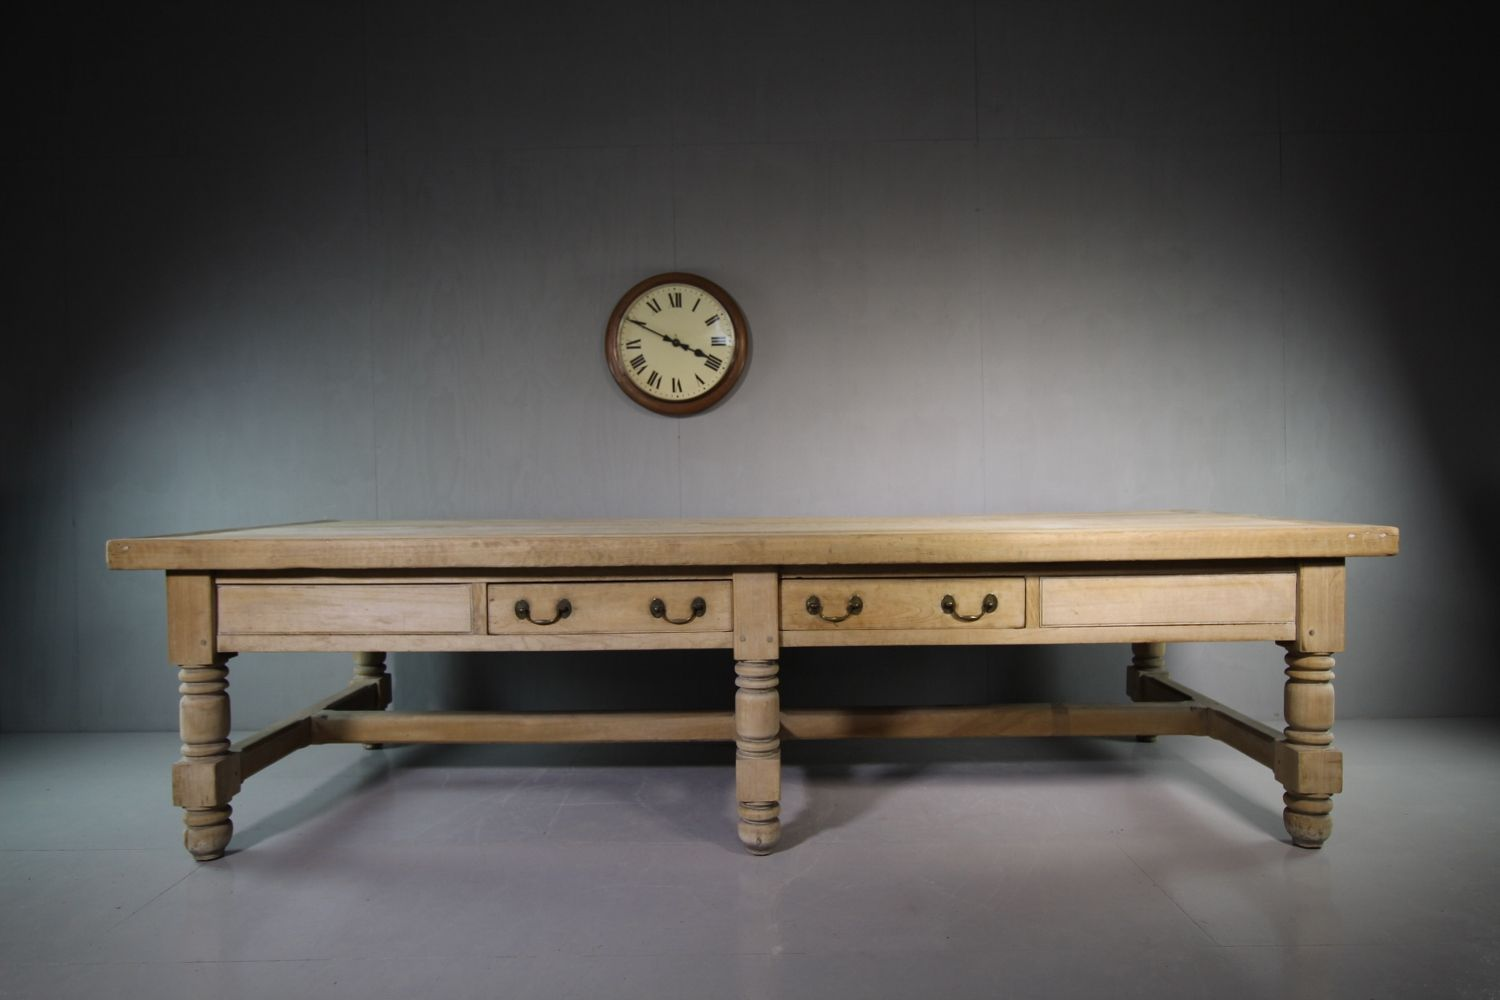 Massive Wroxhall Abbey Antique Preparation Table -miles-griffiths-antiques-IMG_6309 (1500x1000)_main_636269901771815860.jpg